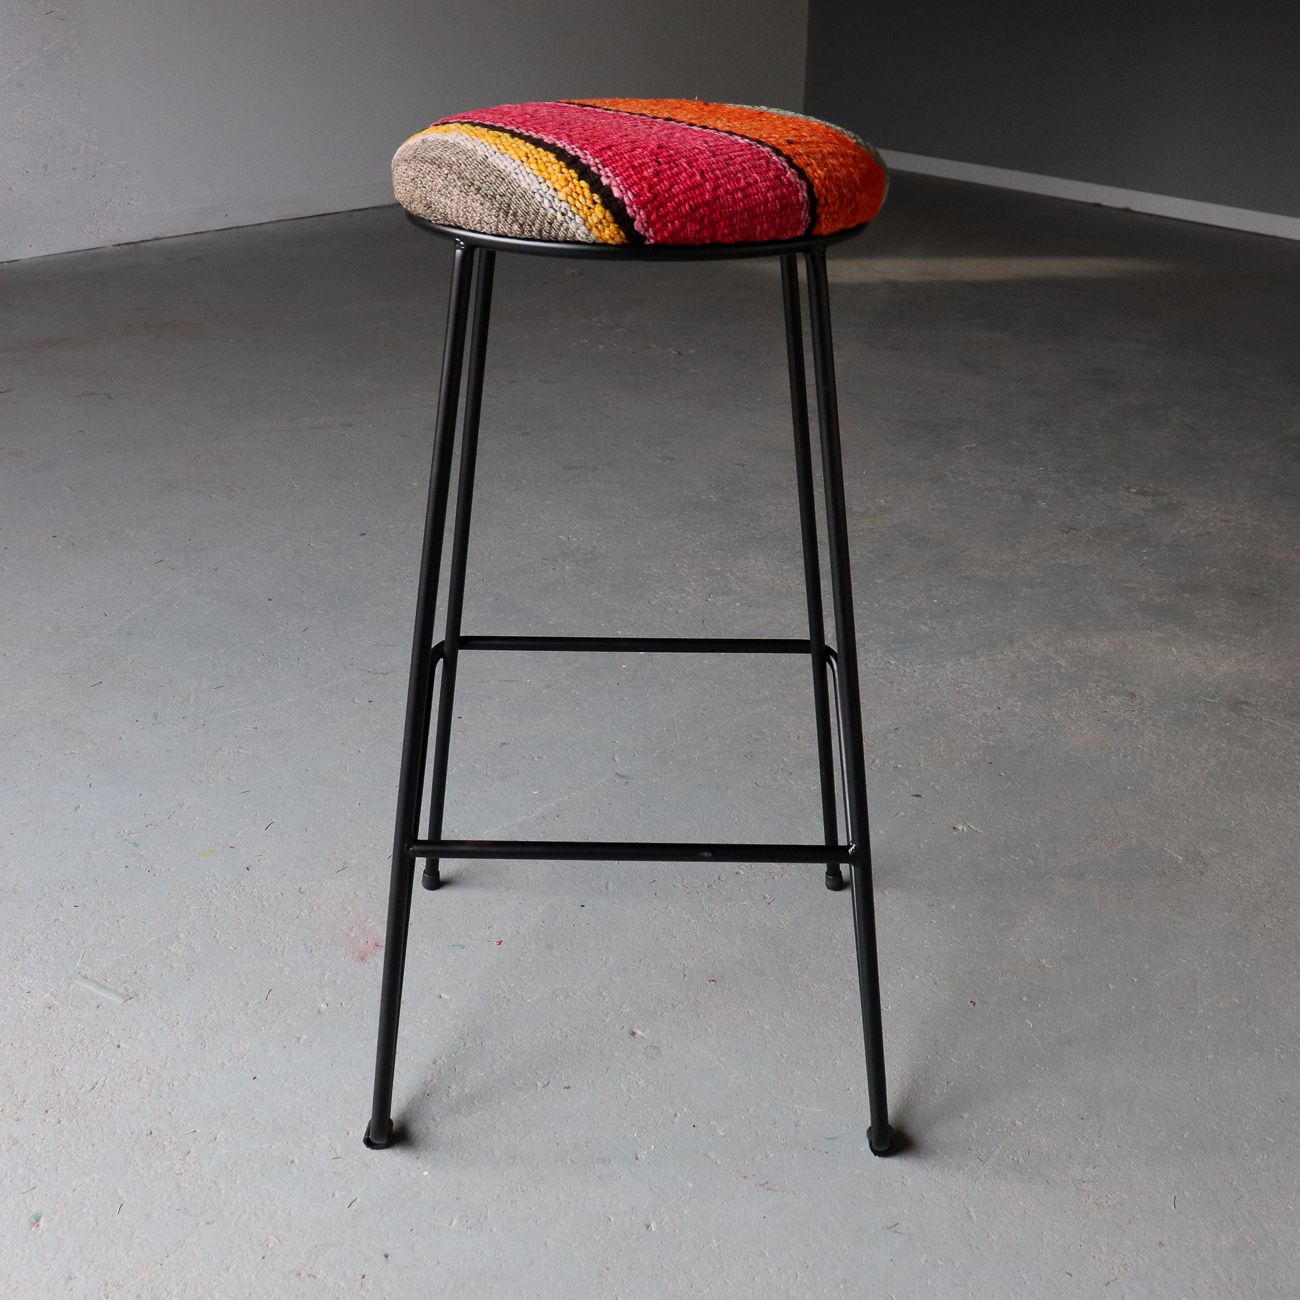 Cool Brightly Coloured Metal Bar Stool Covered In A Peruvian Andrewgaddart Wooden Chair Designs For Living Room Andrewgaddartcom